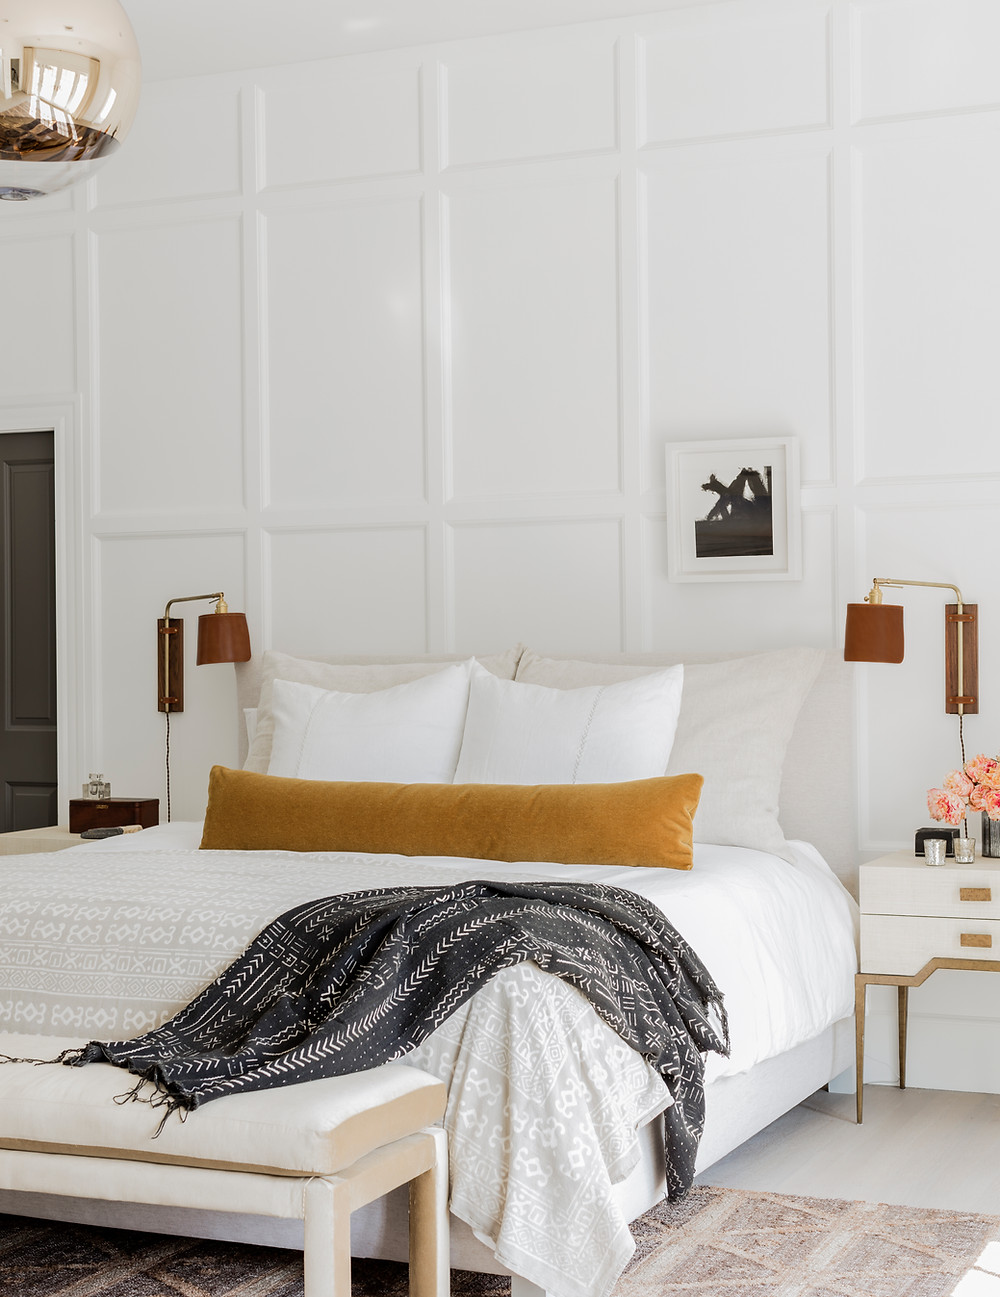 New paneling in the master bedroom.  Interior architecture and design by Lisa Tharp. Photography by Michael J. Lee.